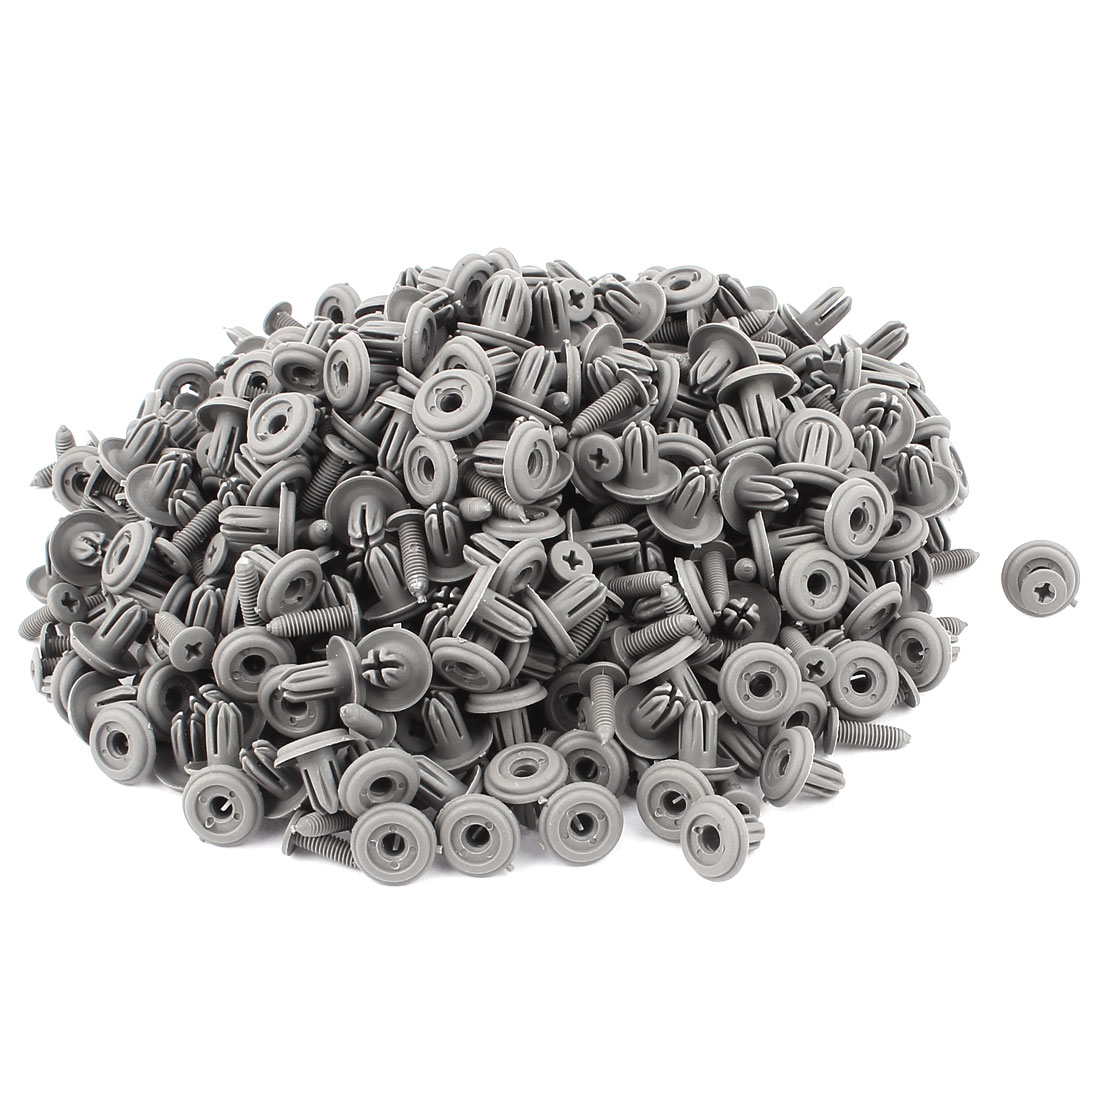 300pcs 6mm Hole Gray Plastic Rivets Fastener Car Push in Type Bumper Retainer Clips